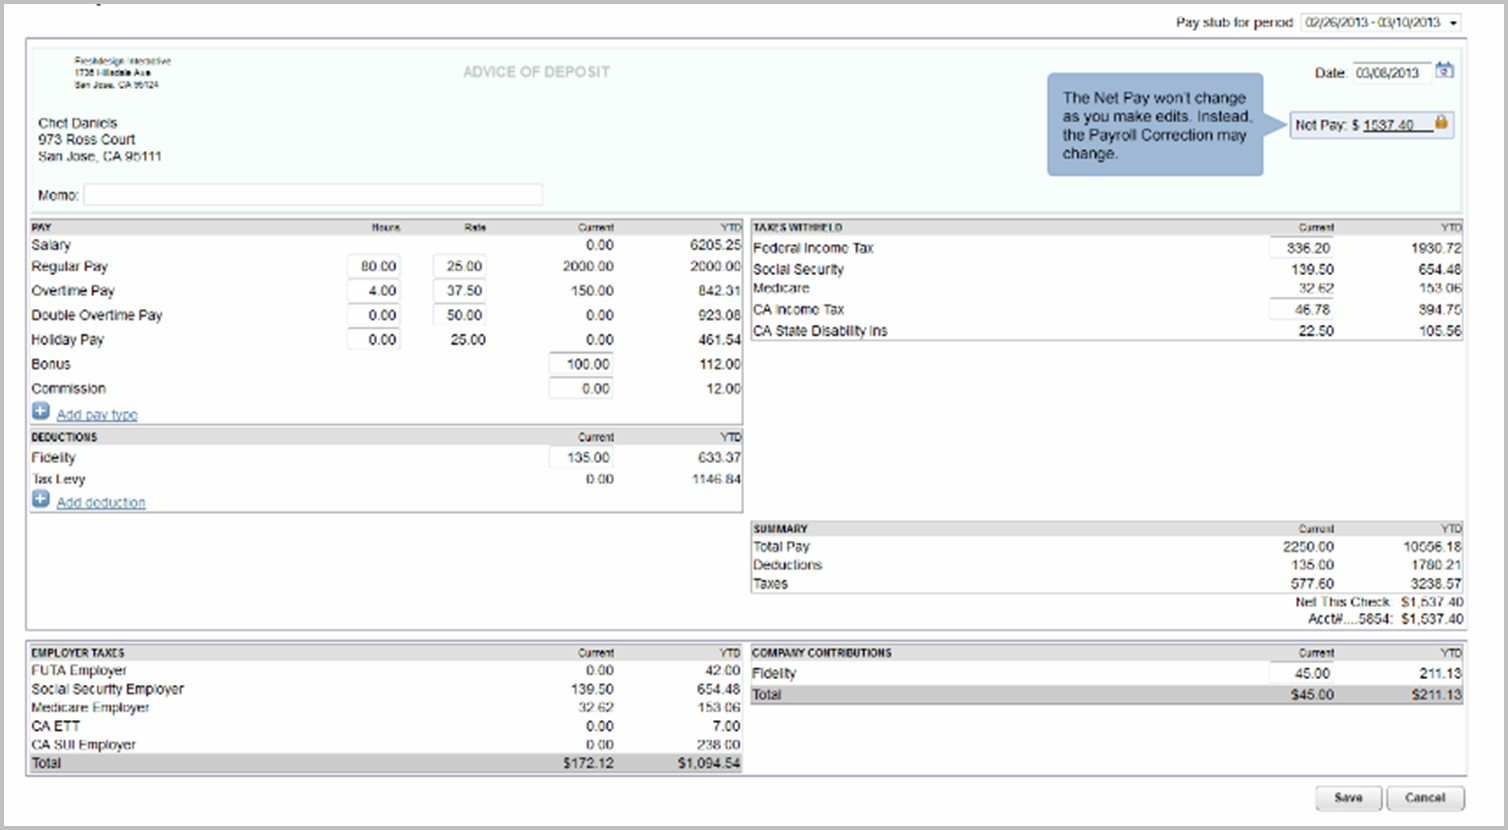 Intuit Pay Stub Template